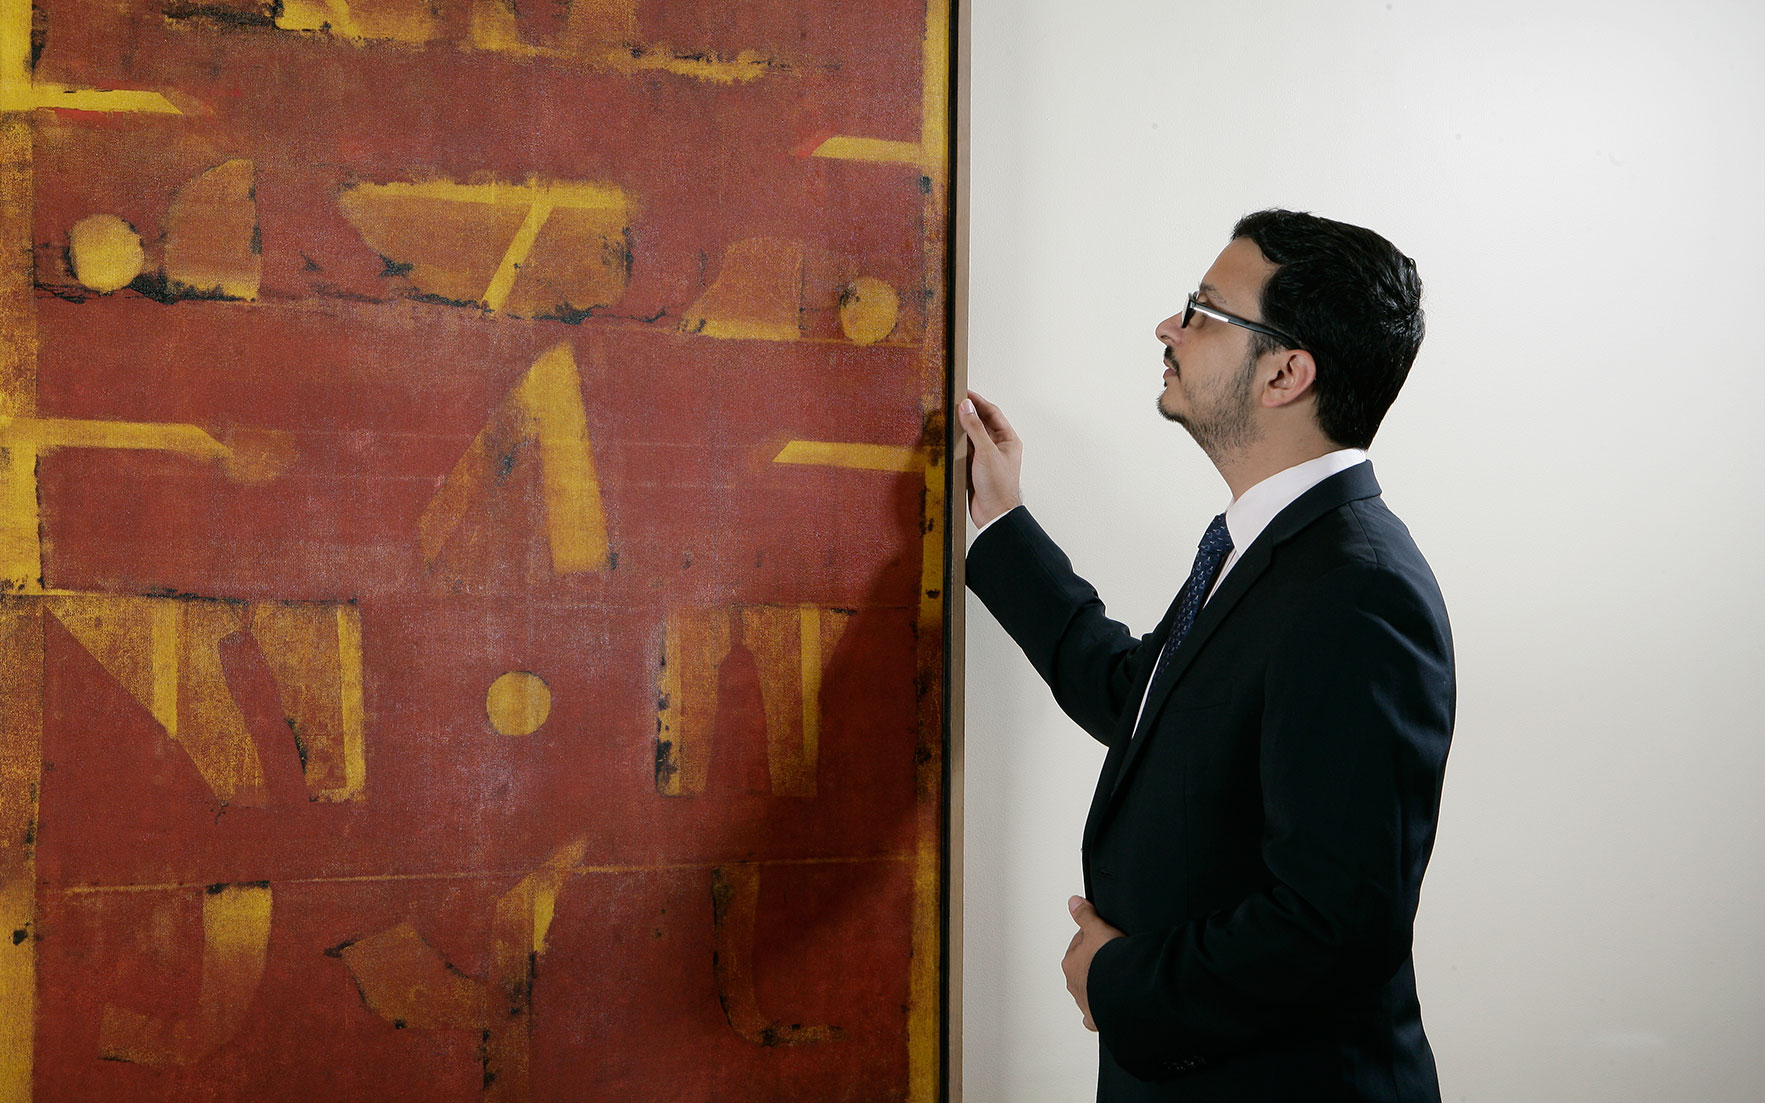 5 minutes with... A masterpiece by V. S. Gaitonde